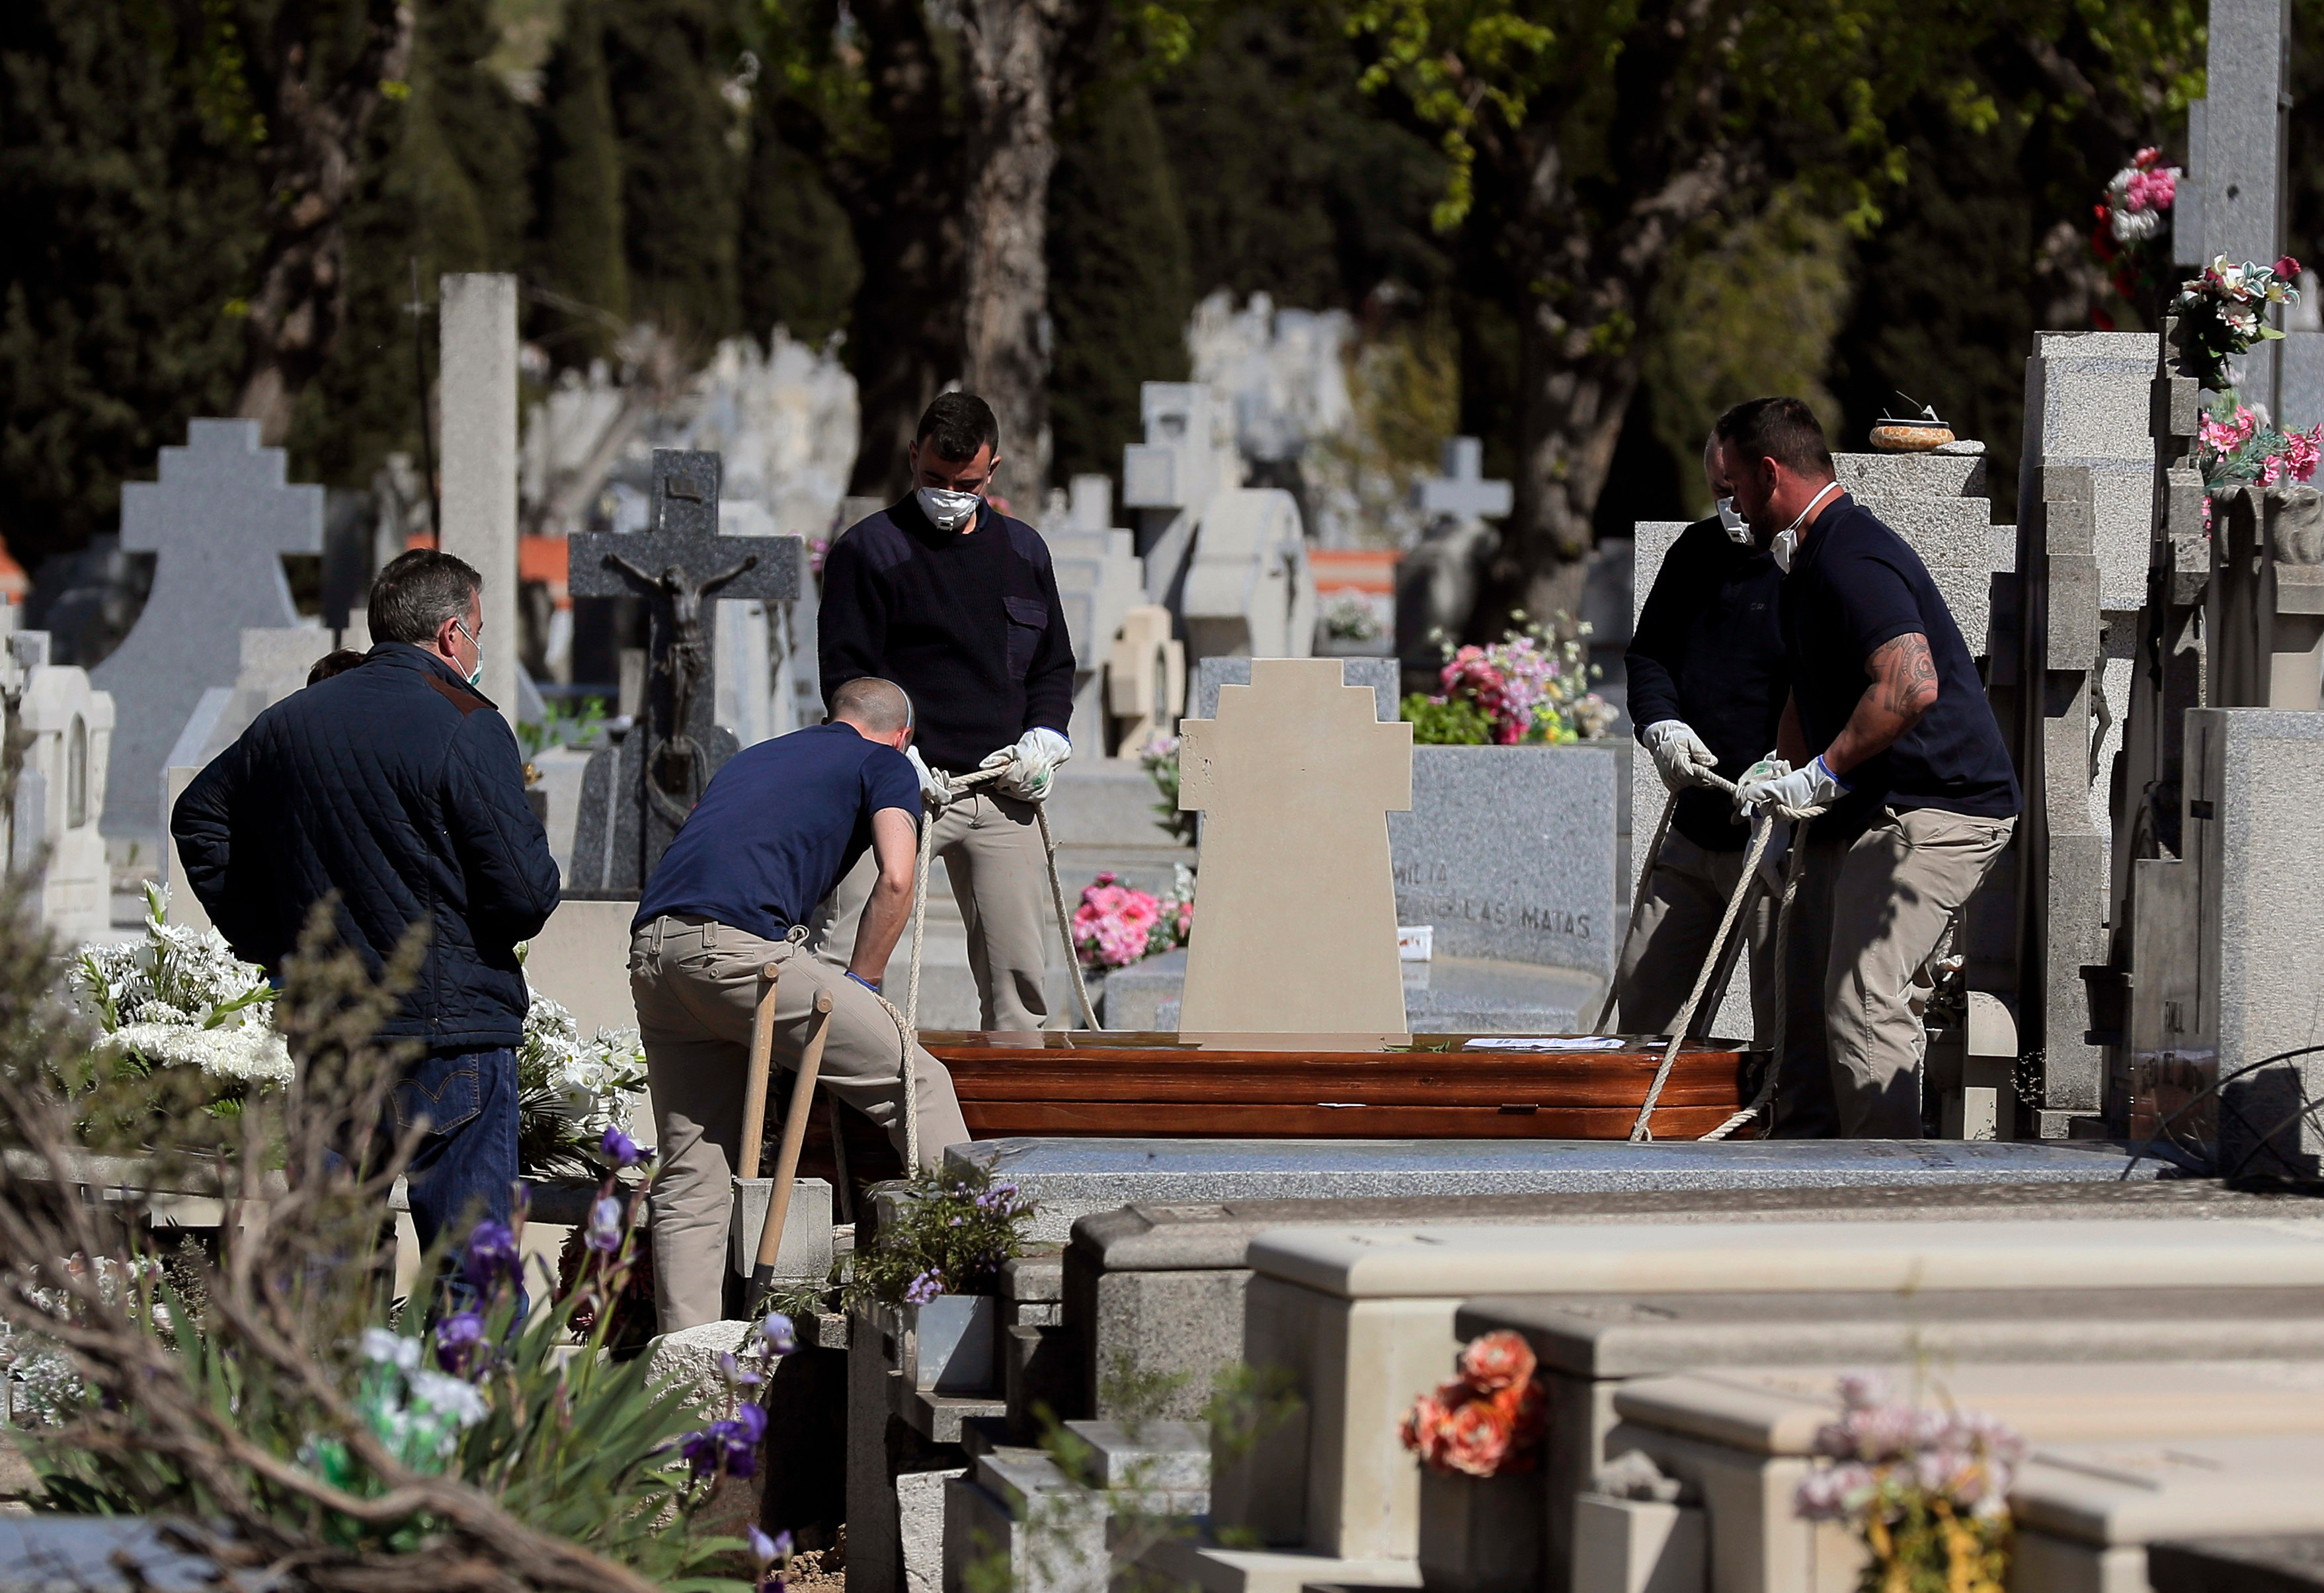 Pallbearers carry a coffin of a person who died of COVID-19 at the cemetery of La Almudena in Madrid